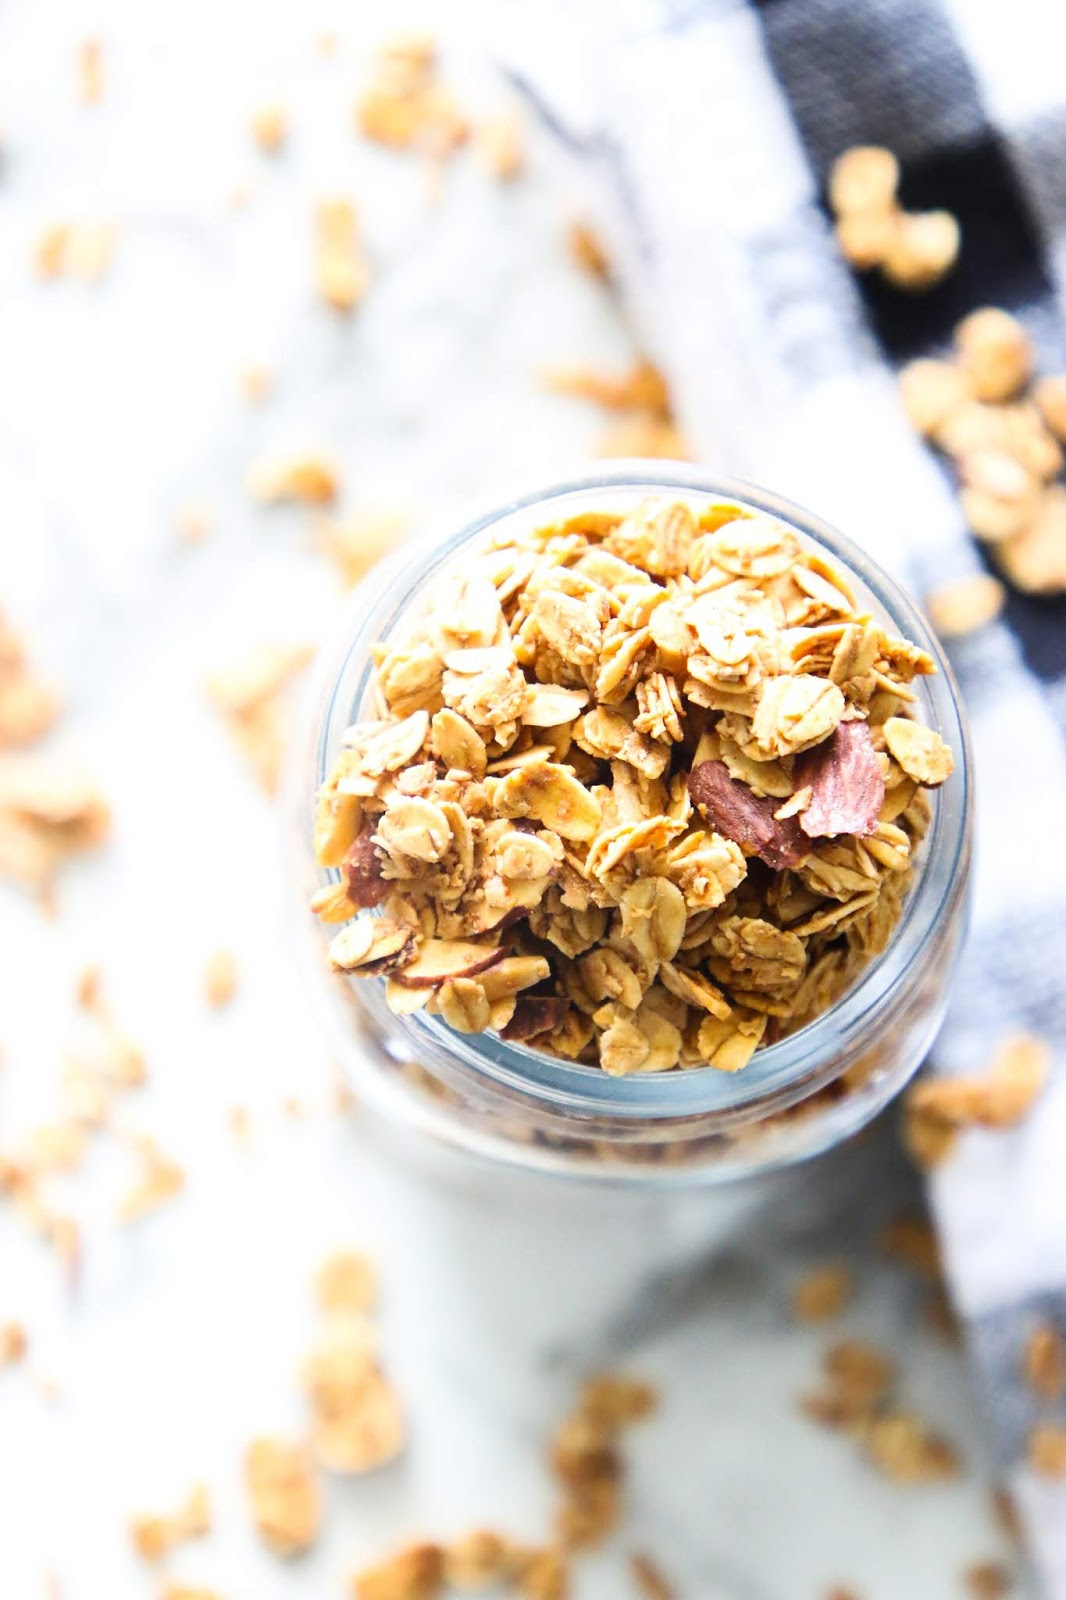 Easy granola recipe for yogurt. Chunky granola recipe. Crunchy granola recipe. Homemade granola clusters. Easy pantry recipes. Easy breakfast recipes. Best homemade granola recipe. Food storage recipes. Pandemic recipes. Easy shelf stable recipes. Simple breakfast ideas. How to use granola. #granola #breakfast #foodstorage #pantry #recipes #oats #oatmealrecipes